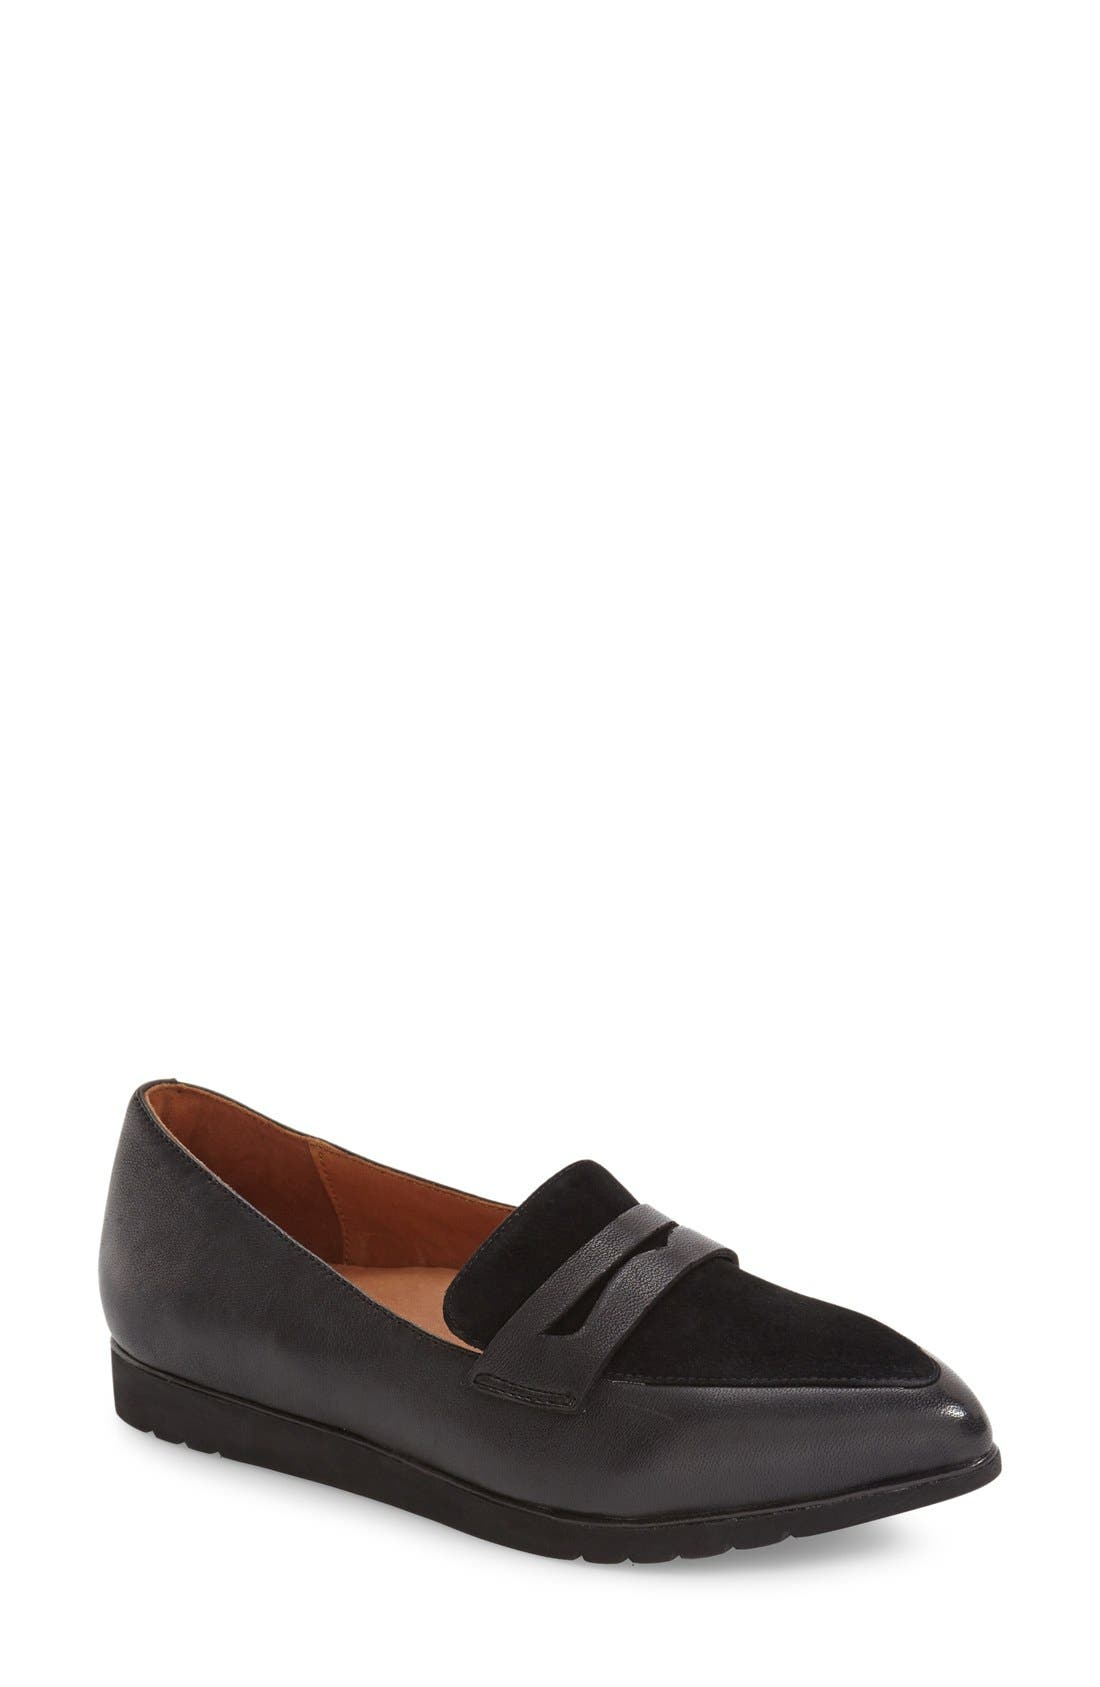 Main Image - L'Amour des Pieds 'Miamore' Pointy Toe Loafer (Women)